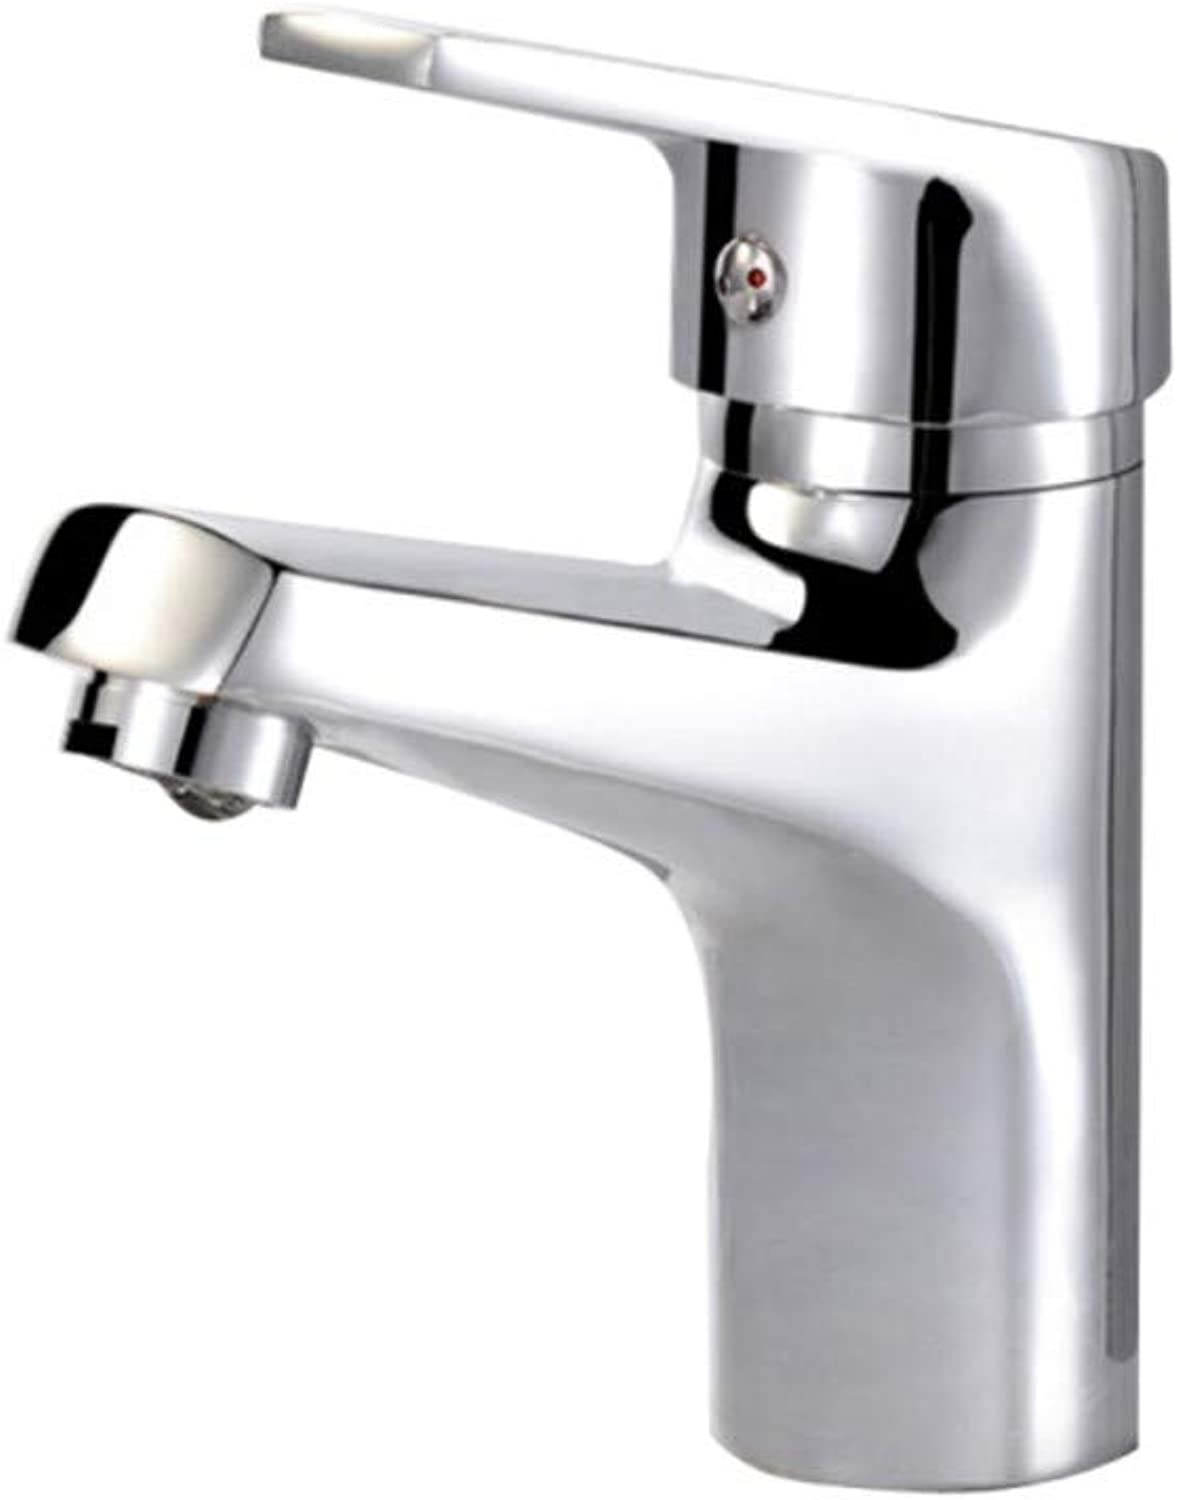 Kitchen Sink Taps Bathroom Taps Basin Faucet Hot and Cold Wash Basin Faucet